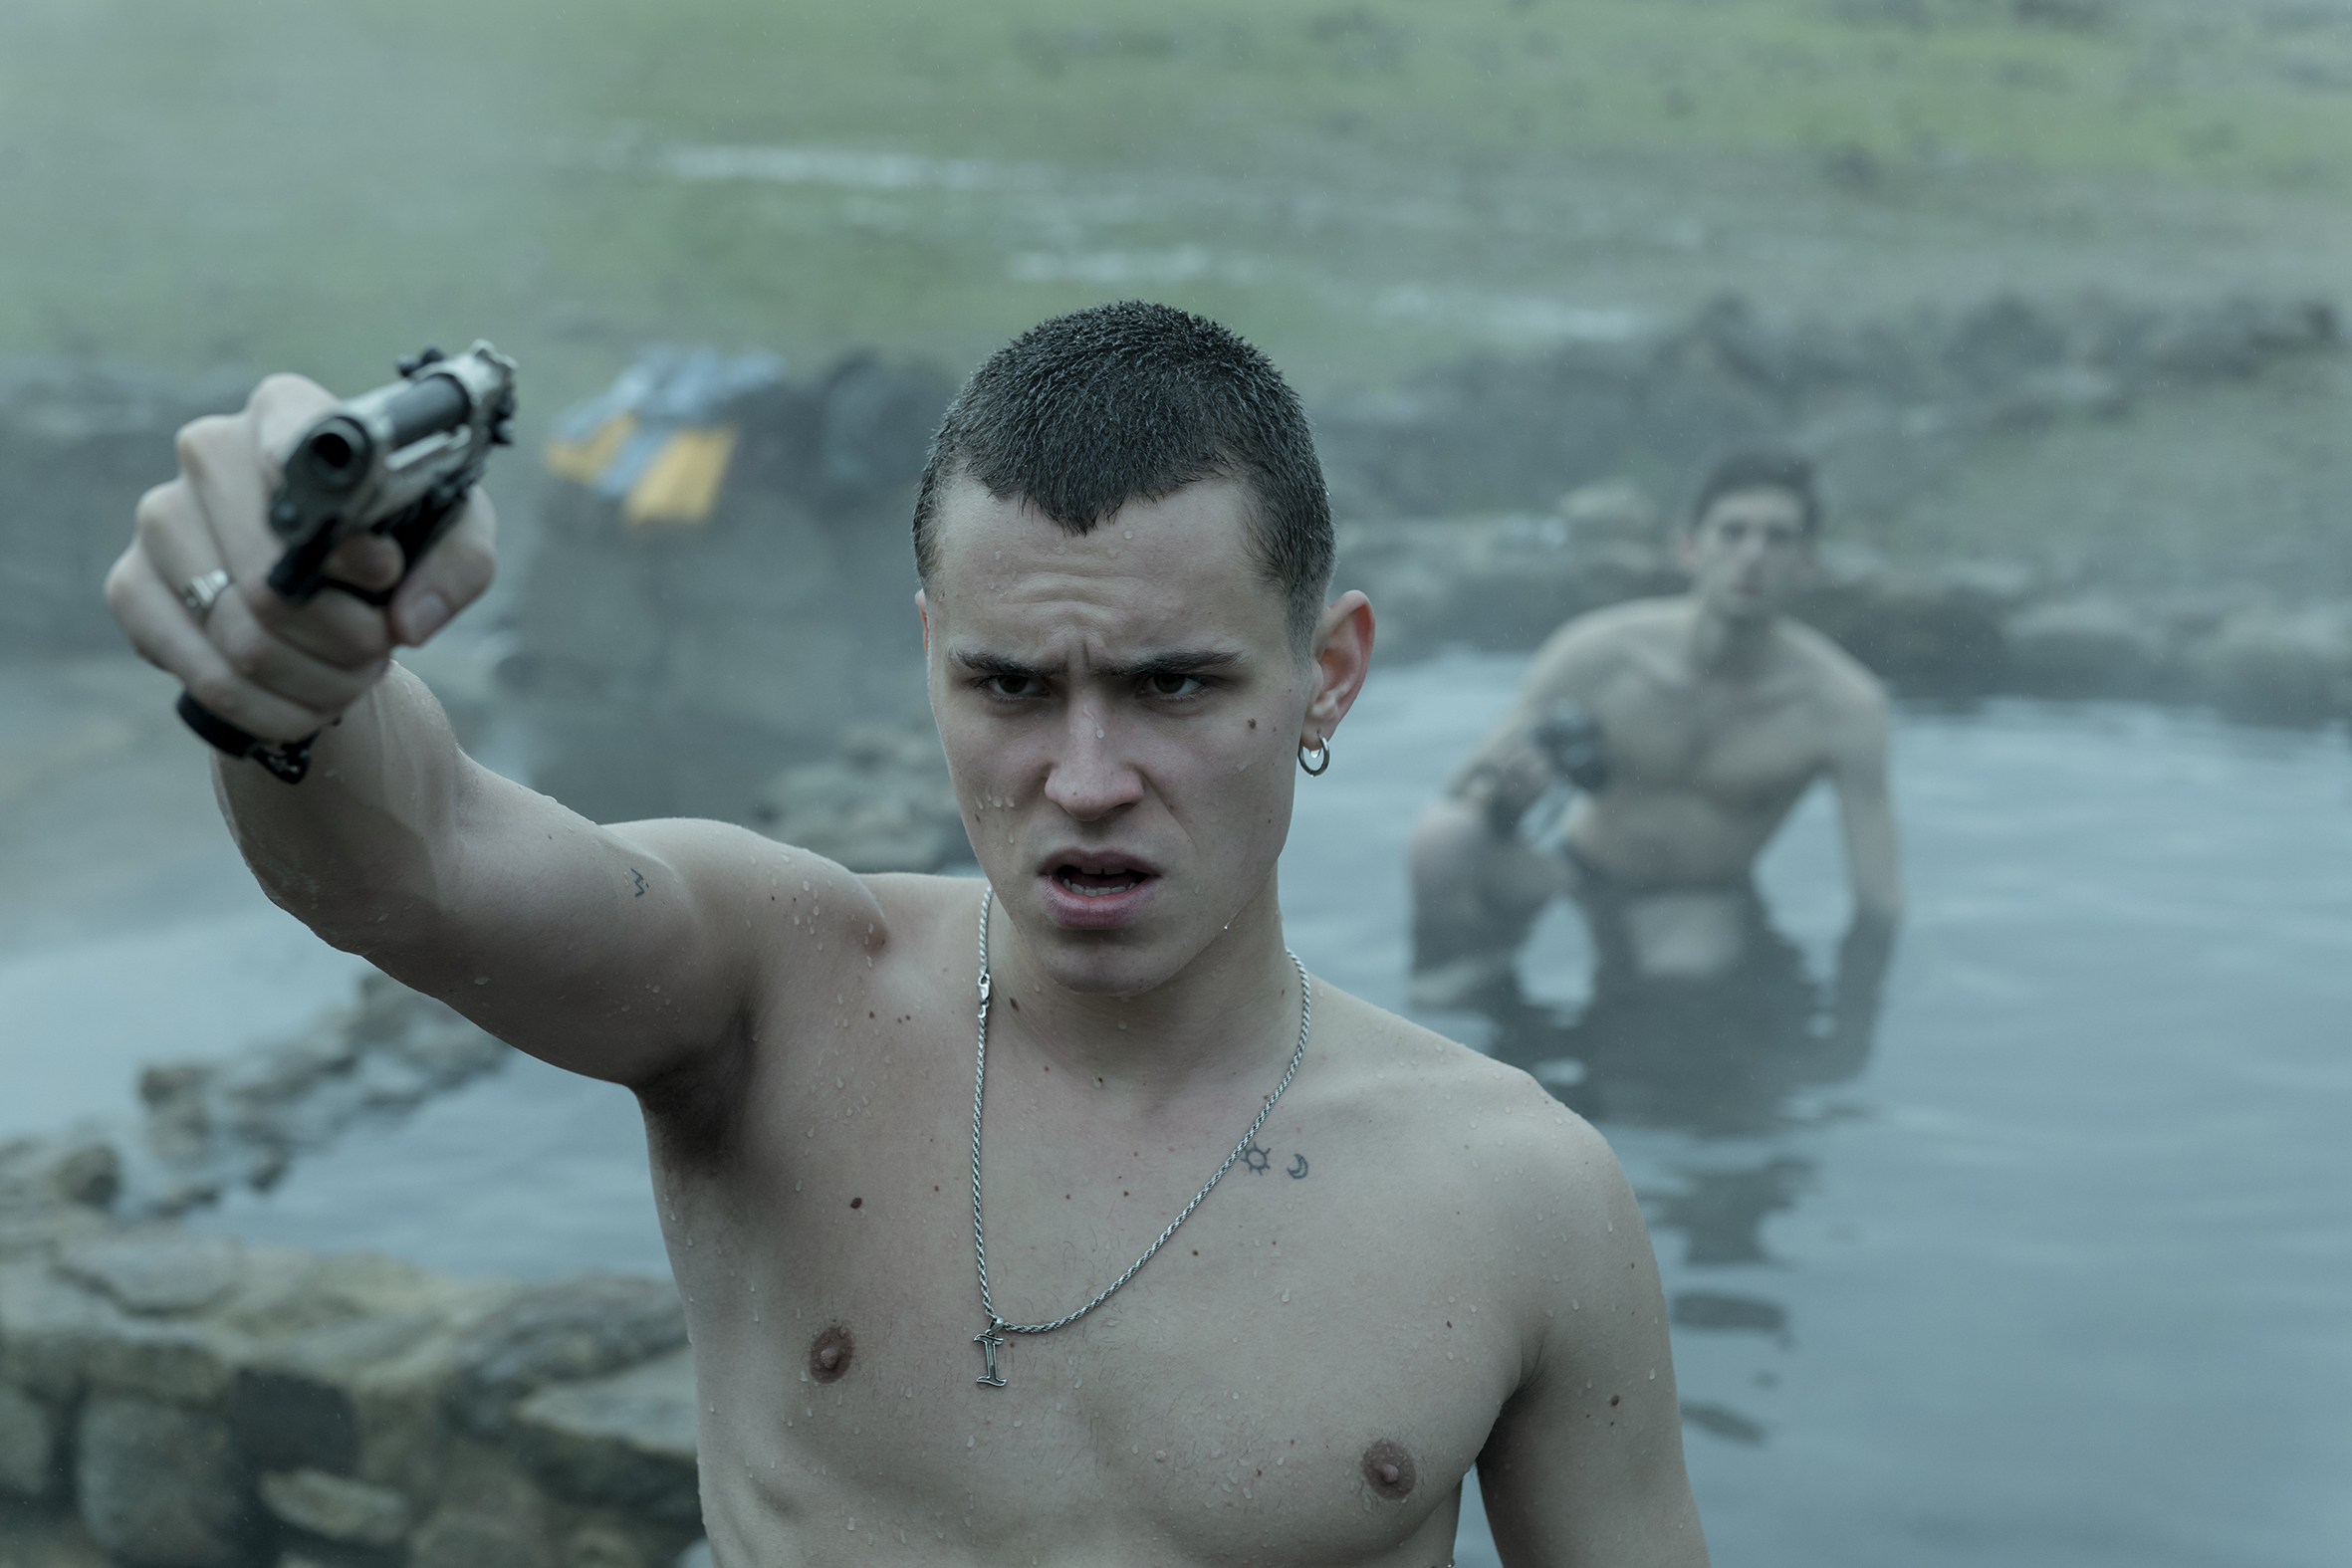 Roque Ruíz and Arón Piper in El desorden que dejas (2020)